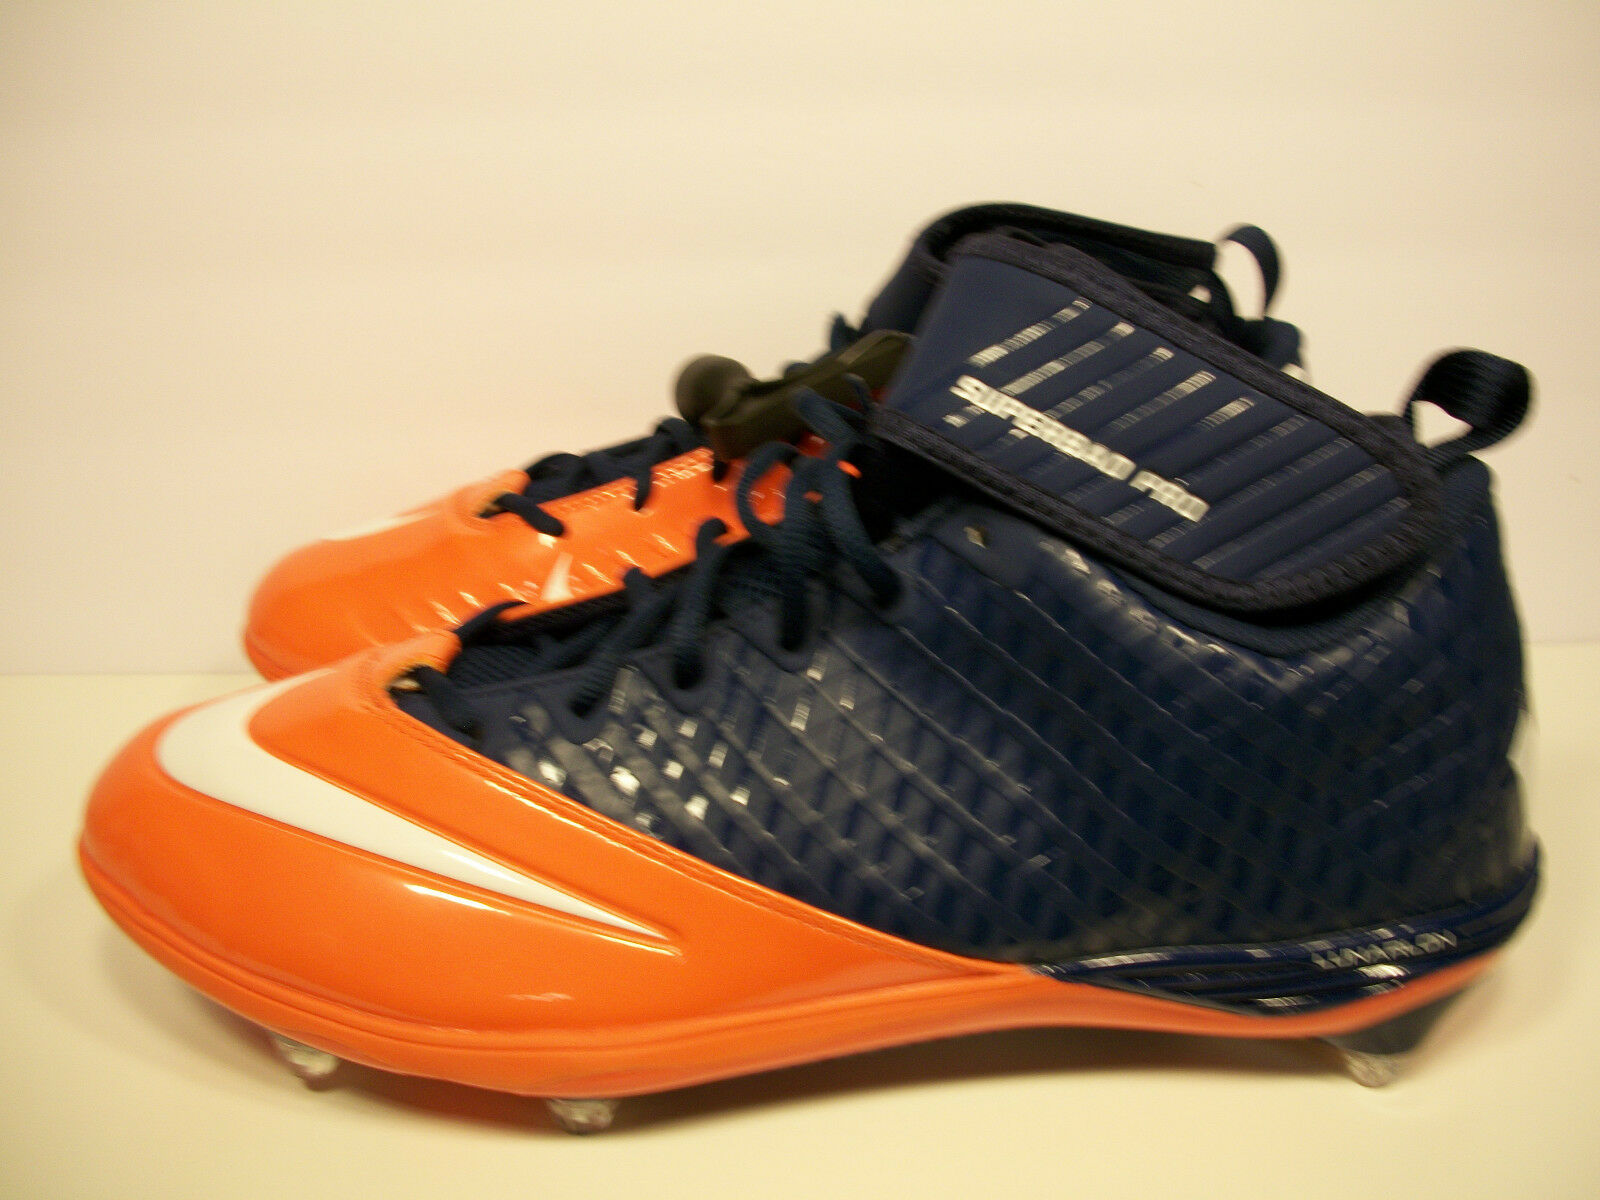 Nike superbad orange pro lunarlon fußball stollen orange superbad / Blau 544762-406 größe. 1f7aa1